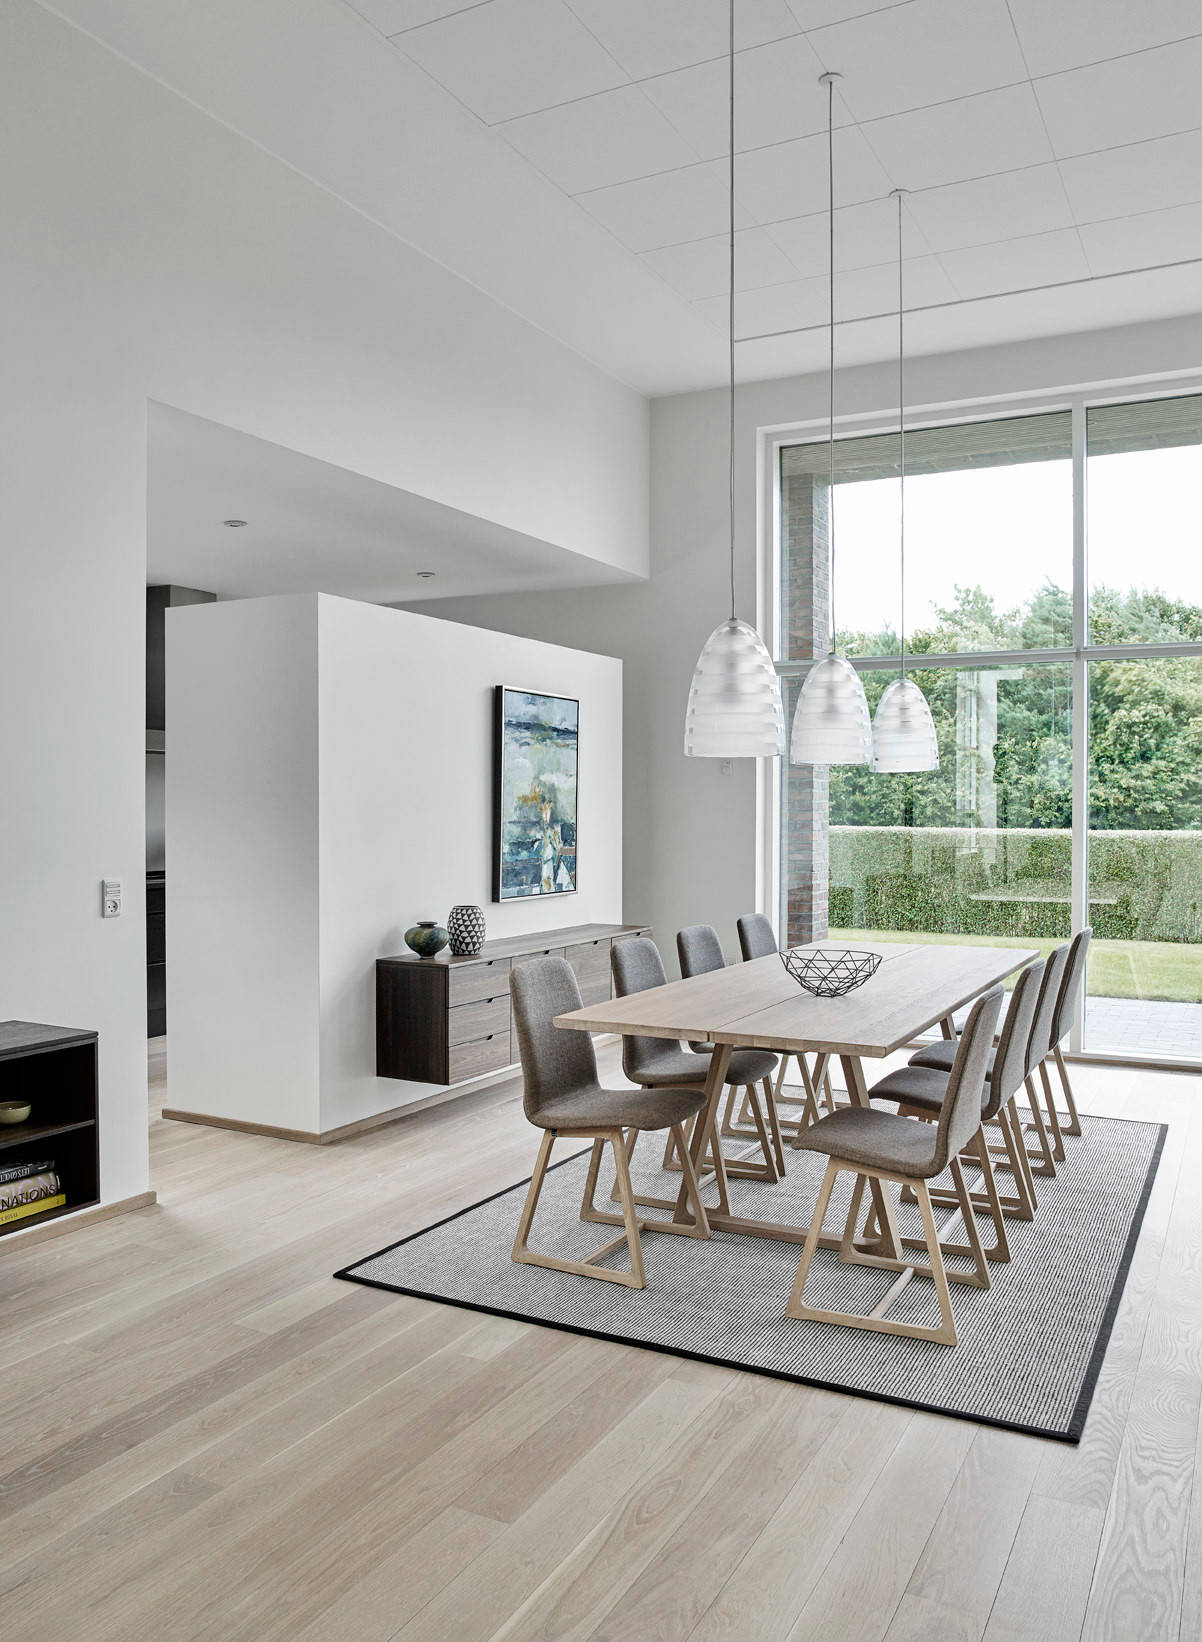 75 Beautiful Modern Dining Room Pictures Ideas April 2021 Houzz